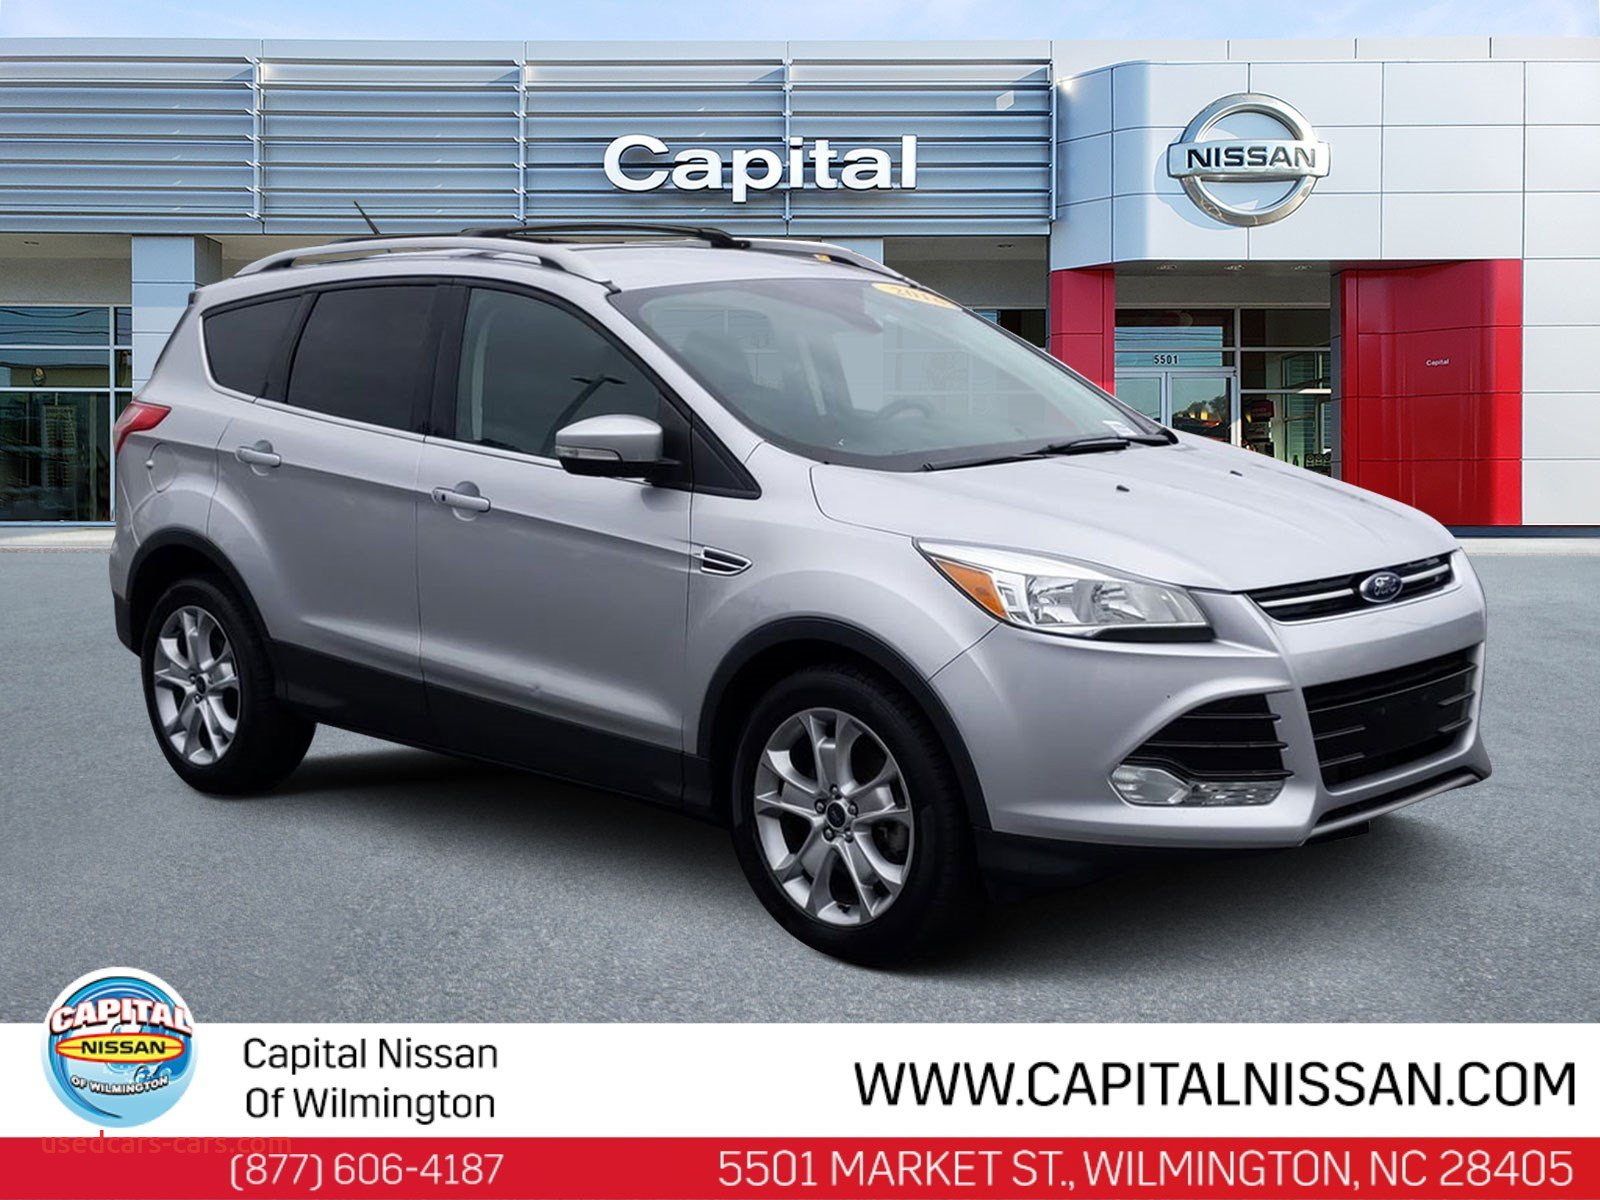 Best Of Capital ford Wilmington north Carolina